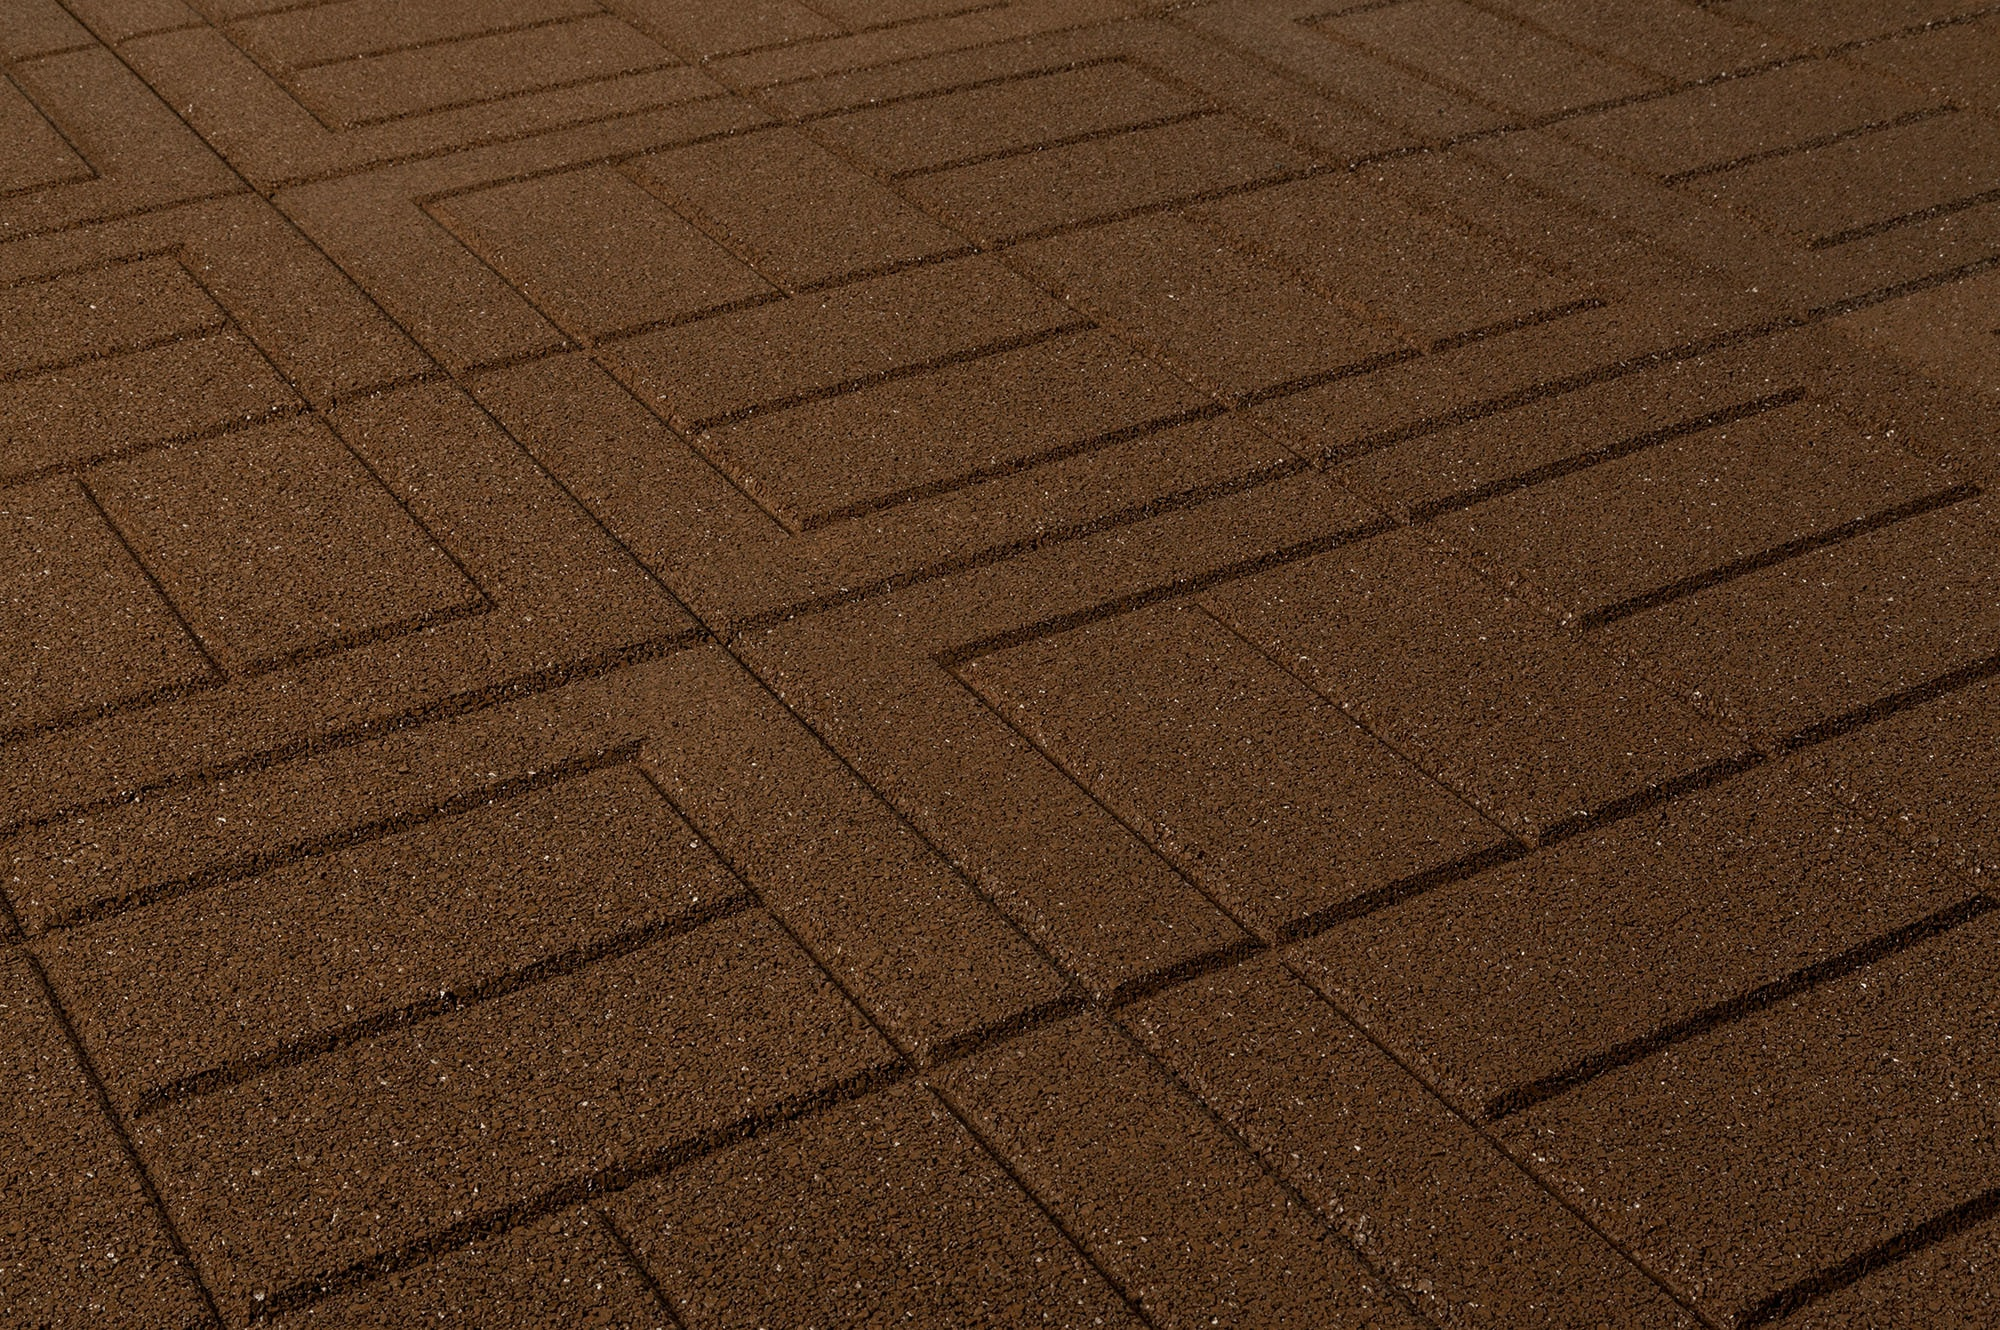 brava outdoor interlocking rubber pavers teak brown